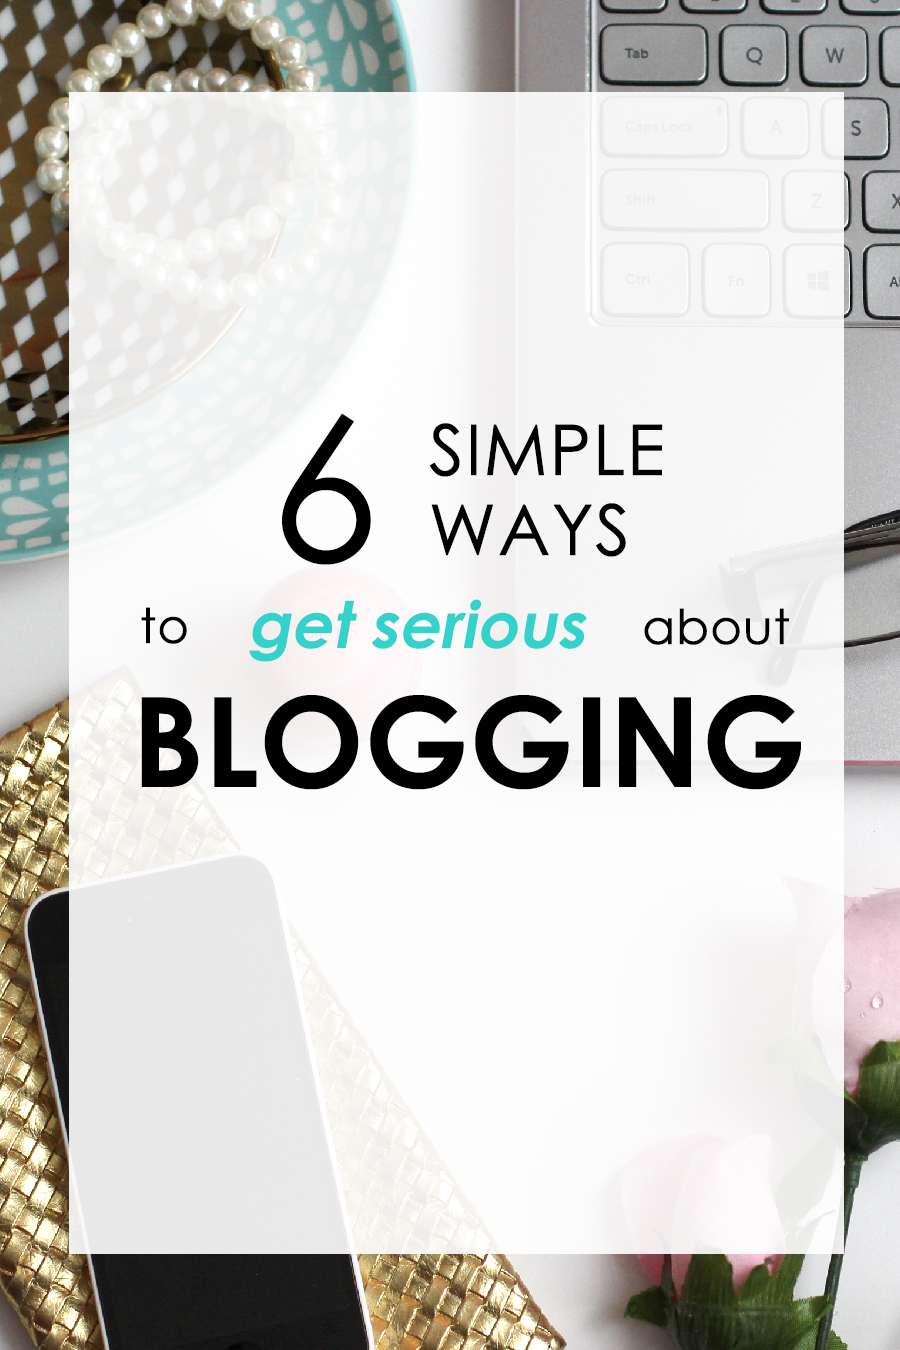 6 simple ways to get serious about blogging. Click to find out more.